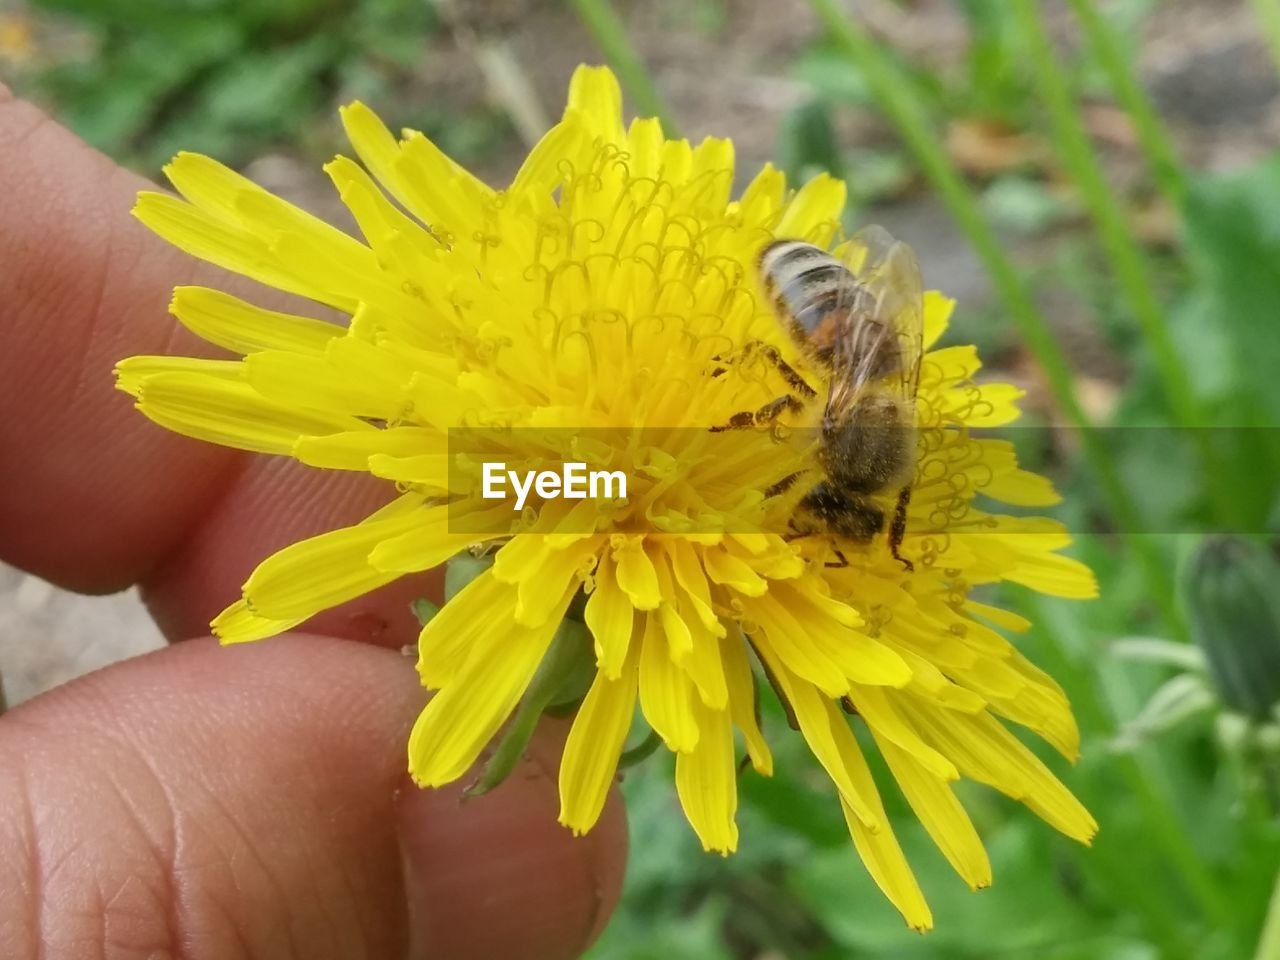 flowering plant, flower, petal, fragility, insect, vulnerability, yellow, beauty in nature, hand, animal themes, freshness, animal wildlife, invertebrate, human body part, flower head, animals in the wild, human hand, plant, bee, animal, body part, finger, pollination, pollen, outdoors